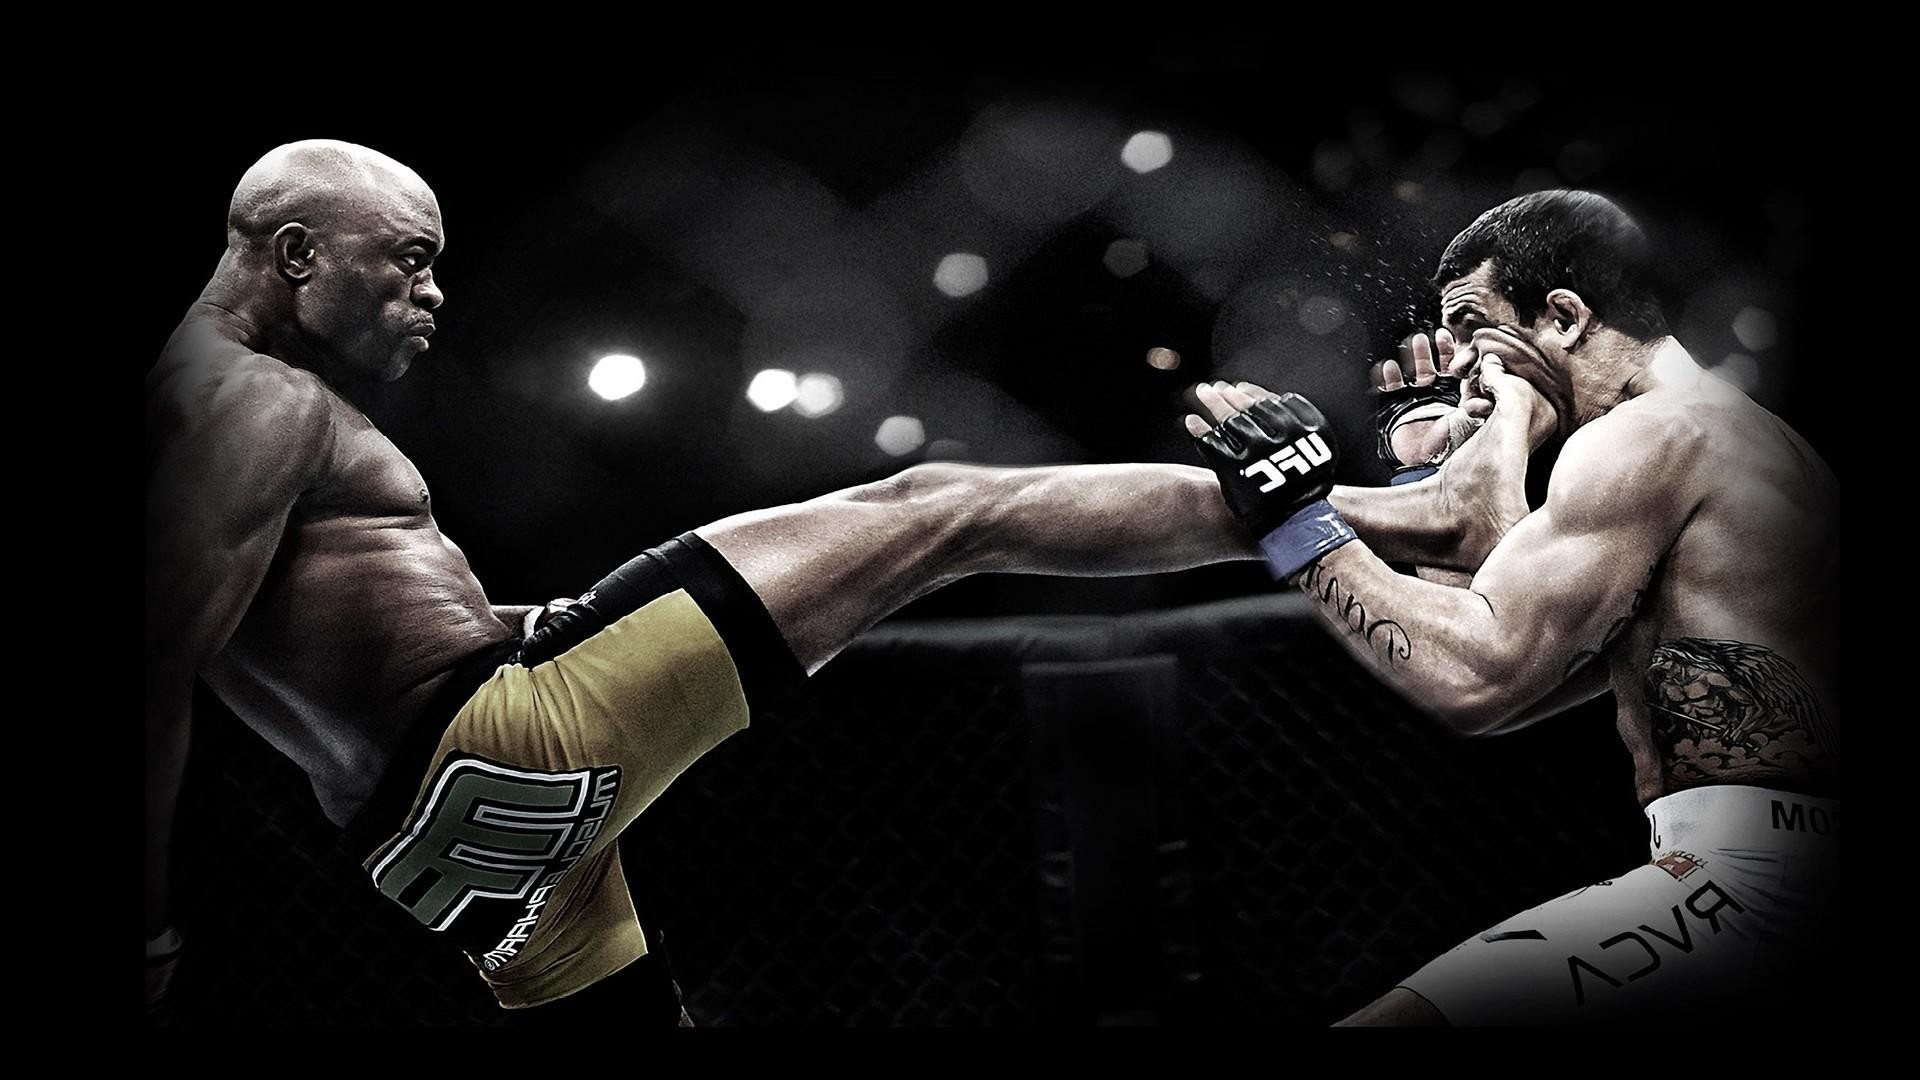 Ufc wallpaper download free full hd wallpapers for desktop and ufc voltagebd Image collections